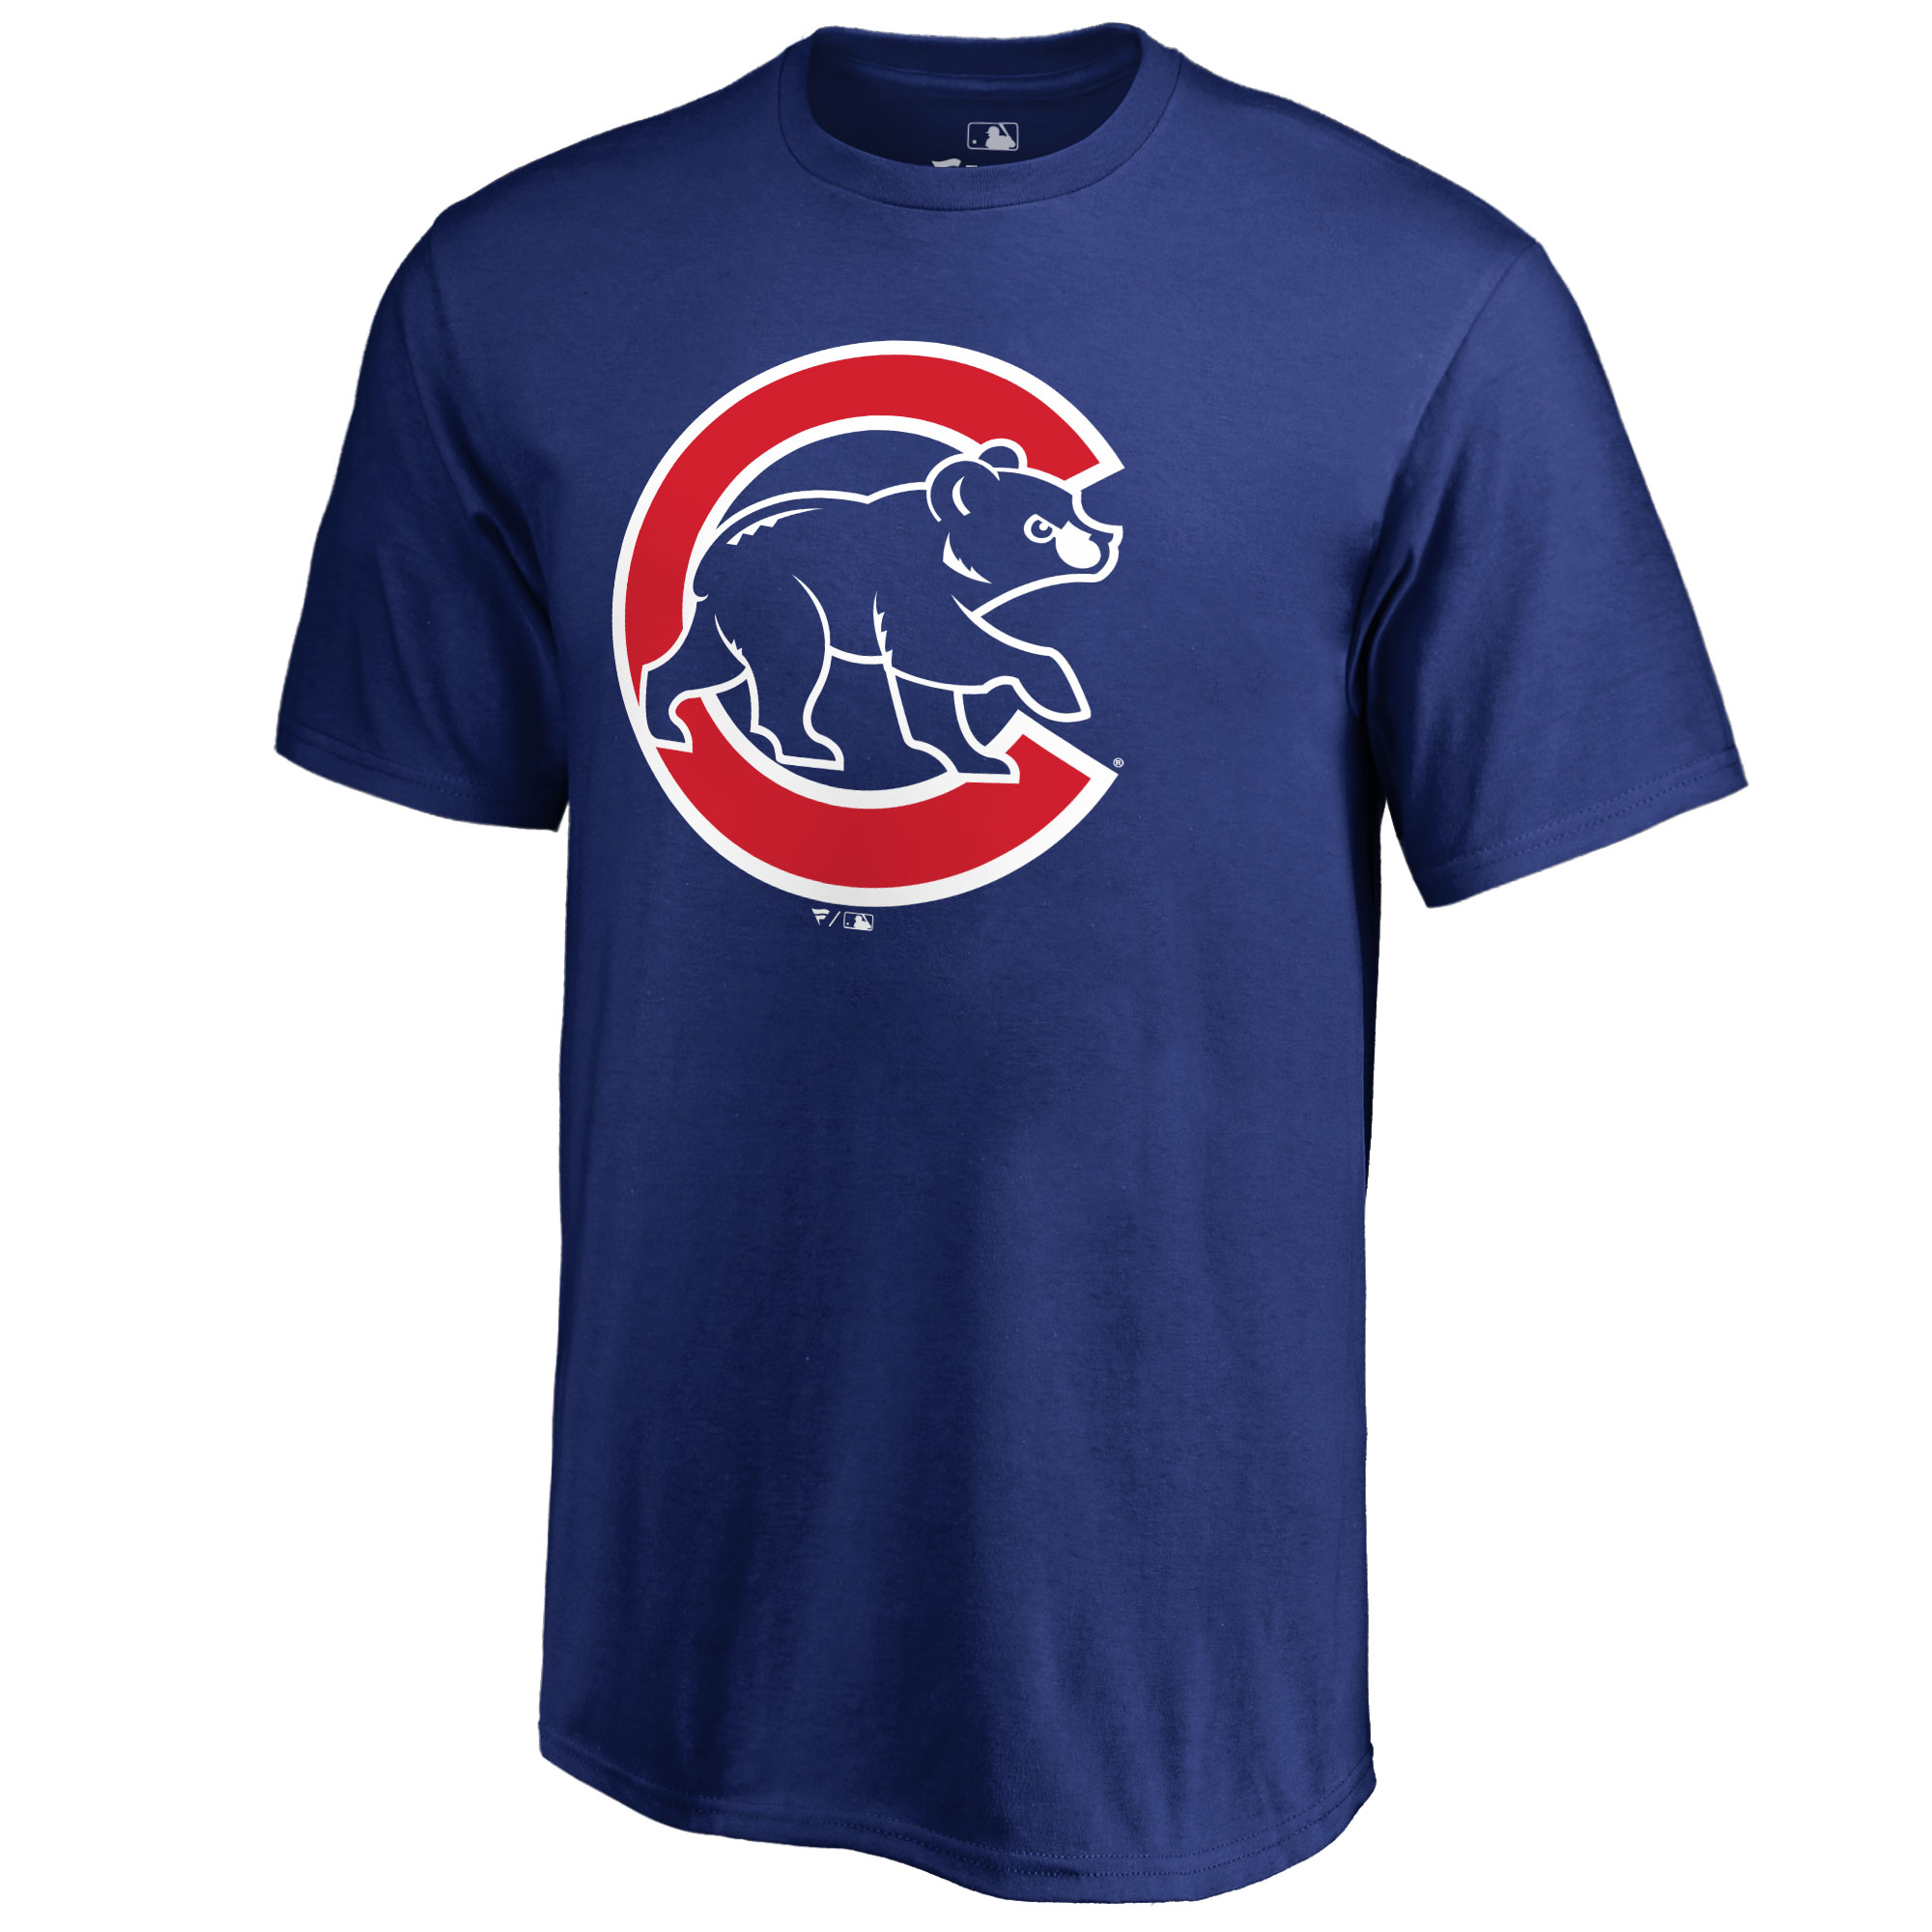 76e5fbacfab1d Chicago Cubs Team Shop - Walmart.com